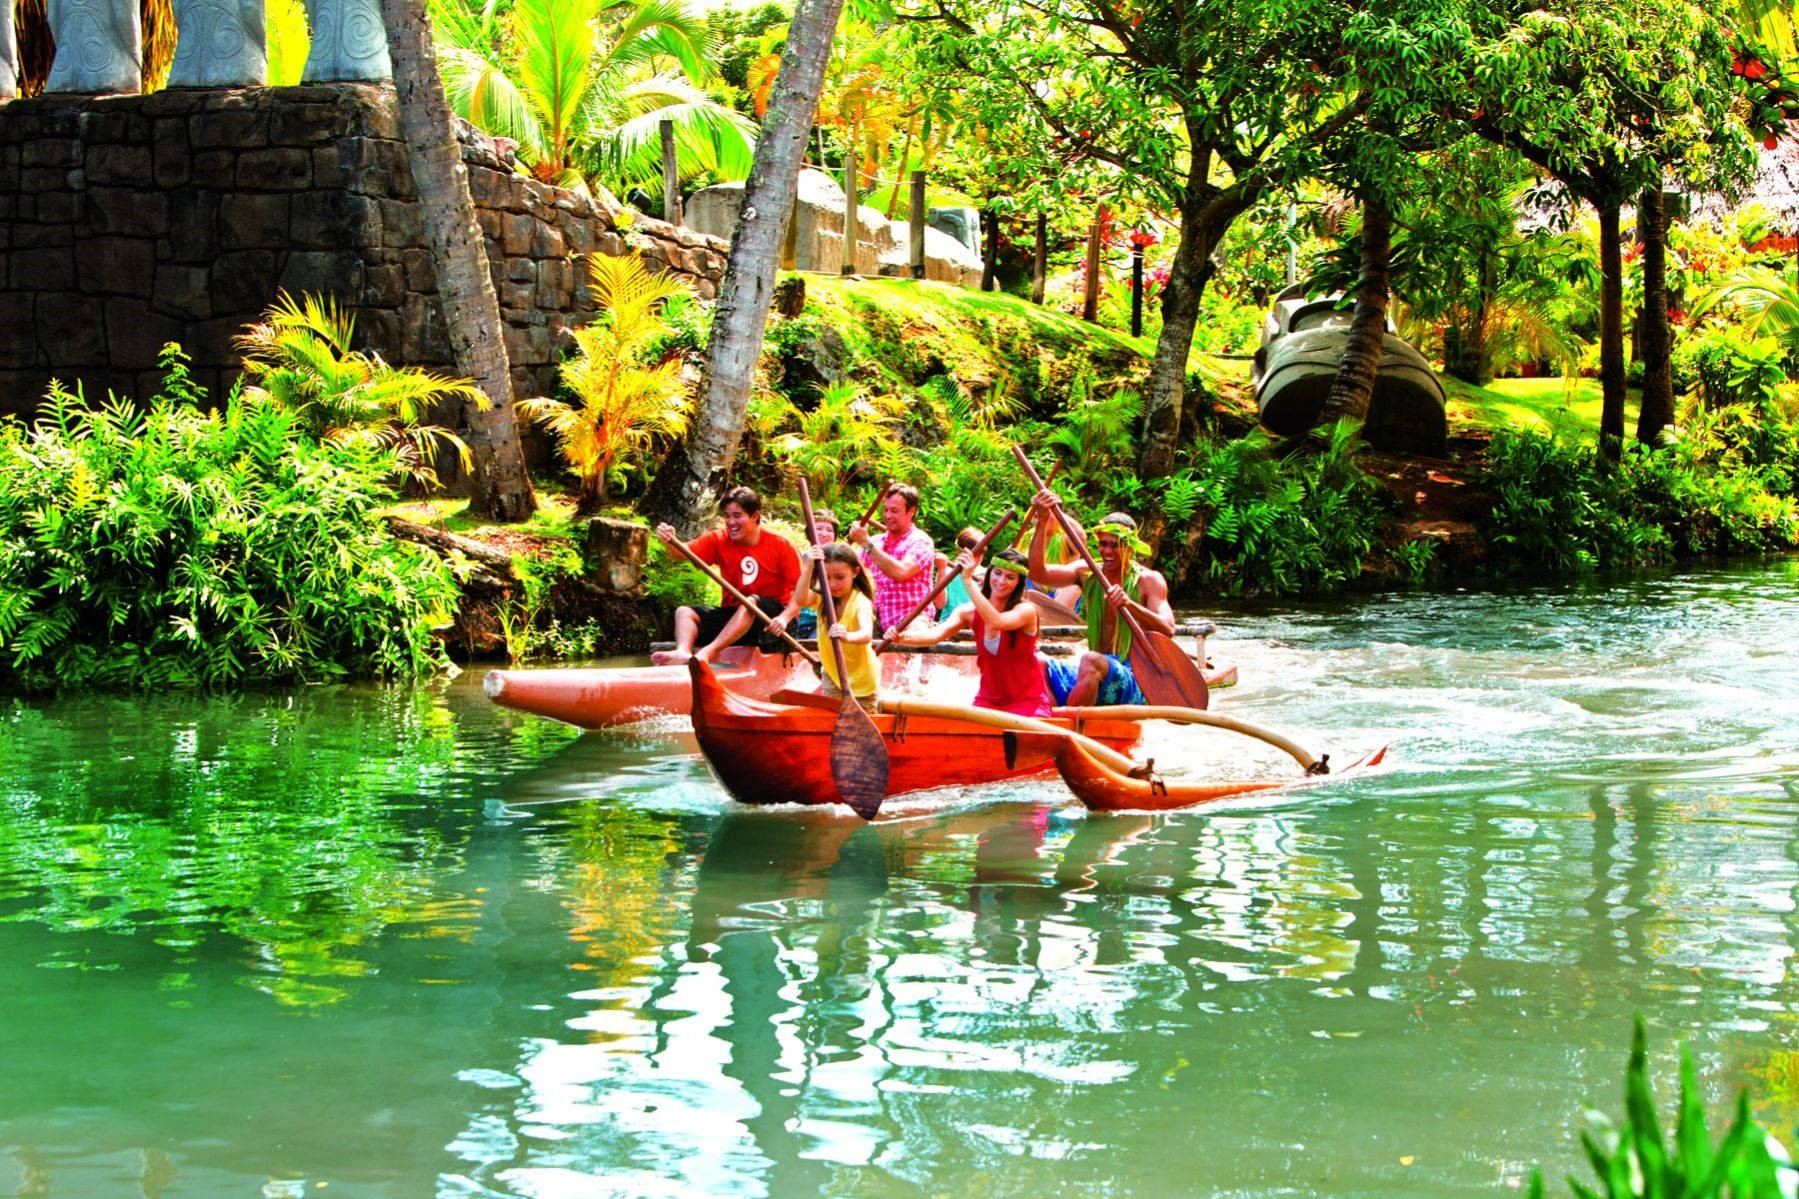 Visitors can paddle canoes around lagoon at PCC